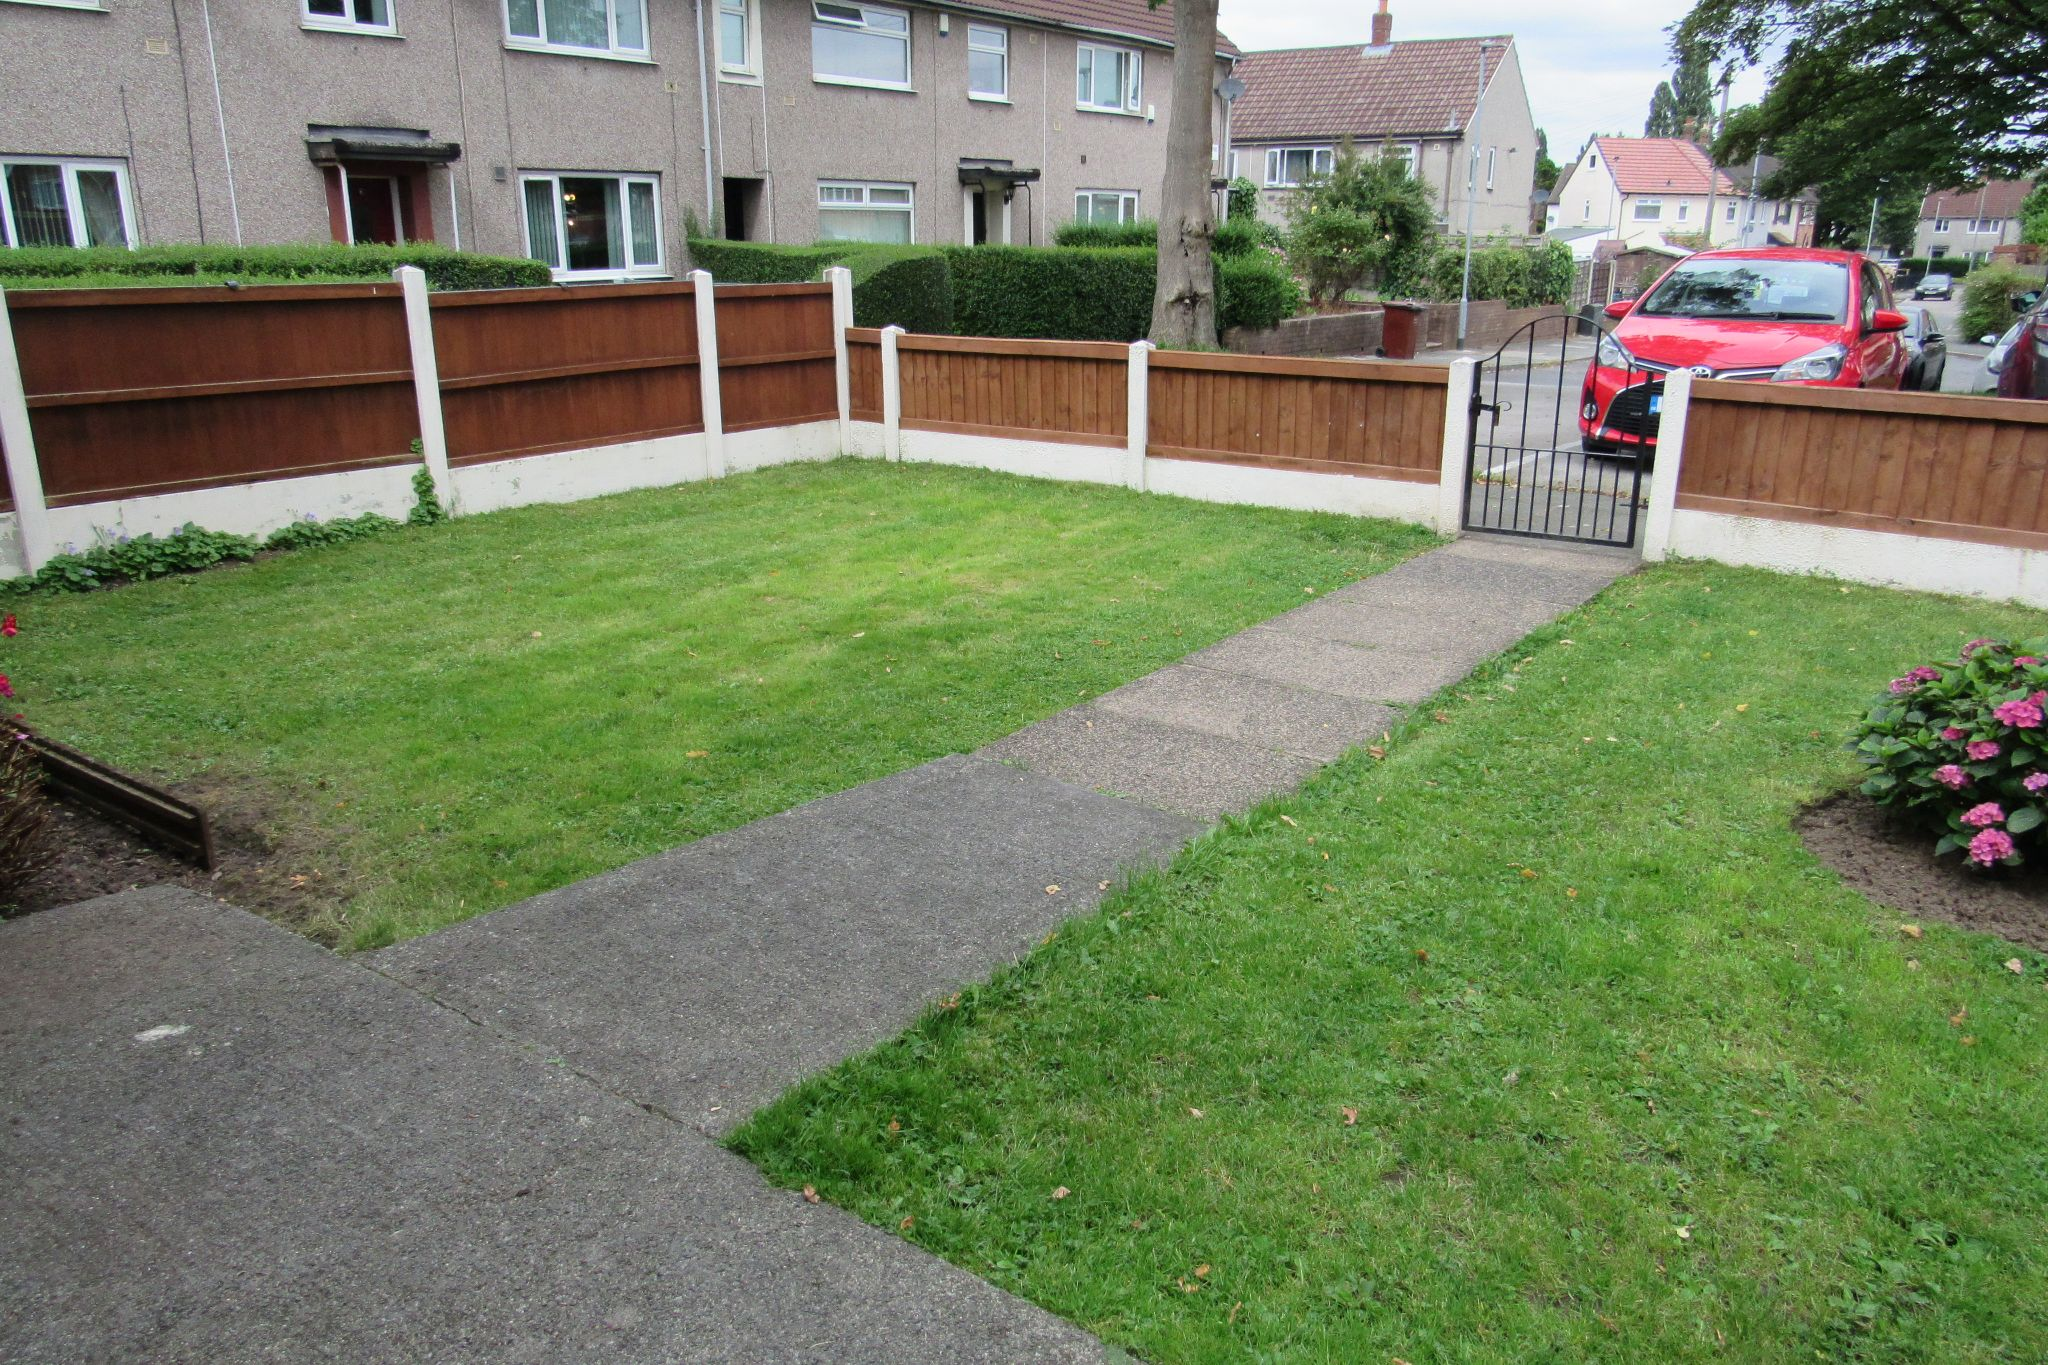 3 bedroom semi-detached house SSTC in Manchester - Photograph 19.